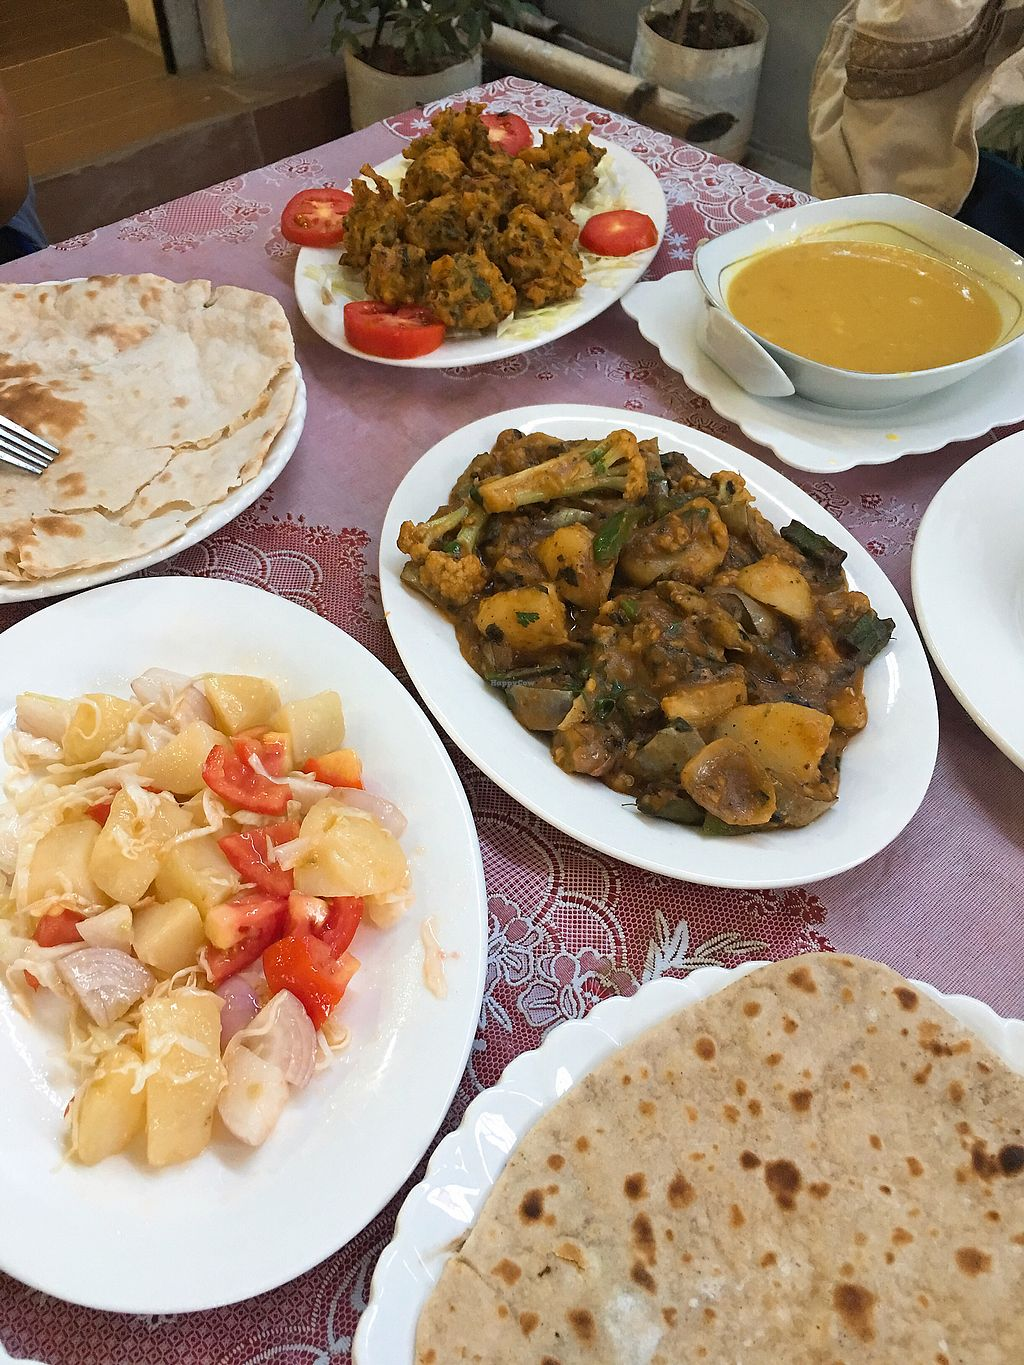 """Photo of Namaaste Kitchen  by <a href=""""/members/profile/AnthonyPolicano"""">AnthonyPolicano</a> <br/>Pakoras, dal soup, mixed veg curry, parota, potato tomato salad, chapati <br/> October 15, 2017  - <a href='/contact/abuse/image/102859/315524'>Report</a>"""